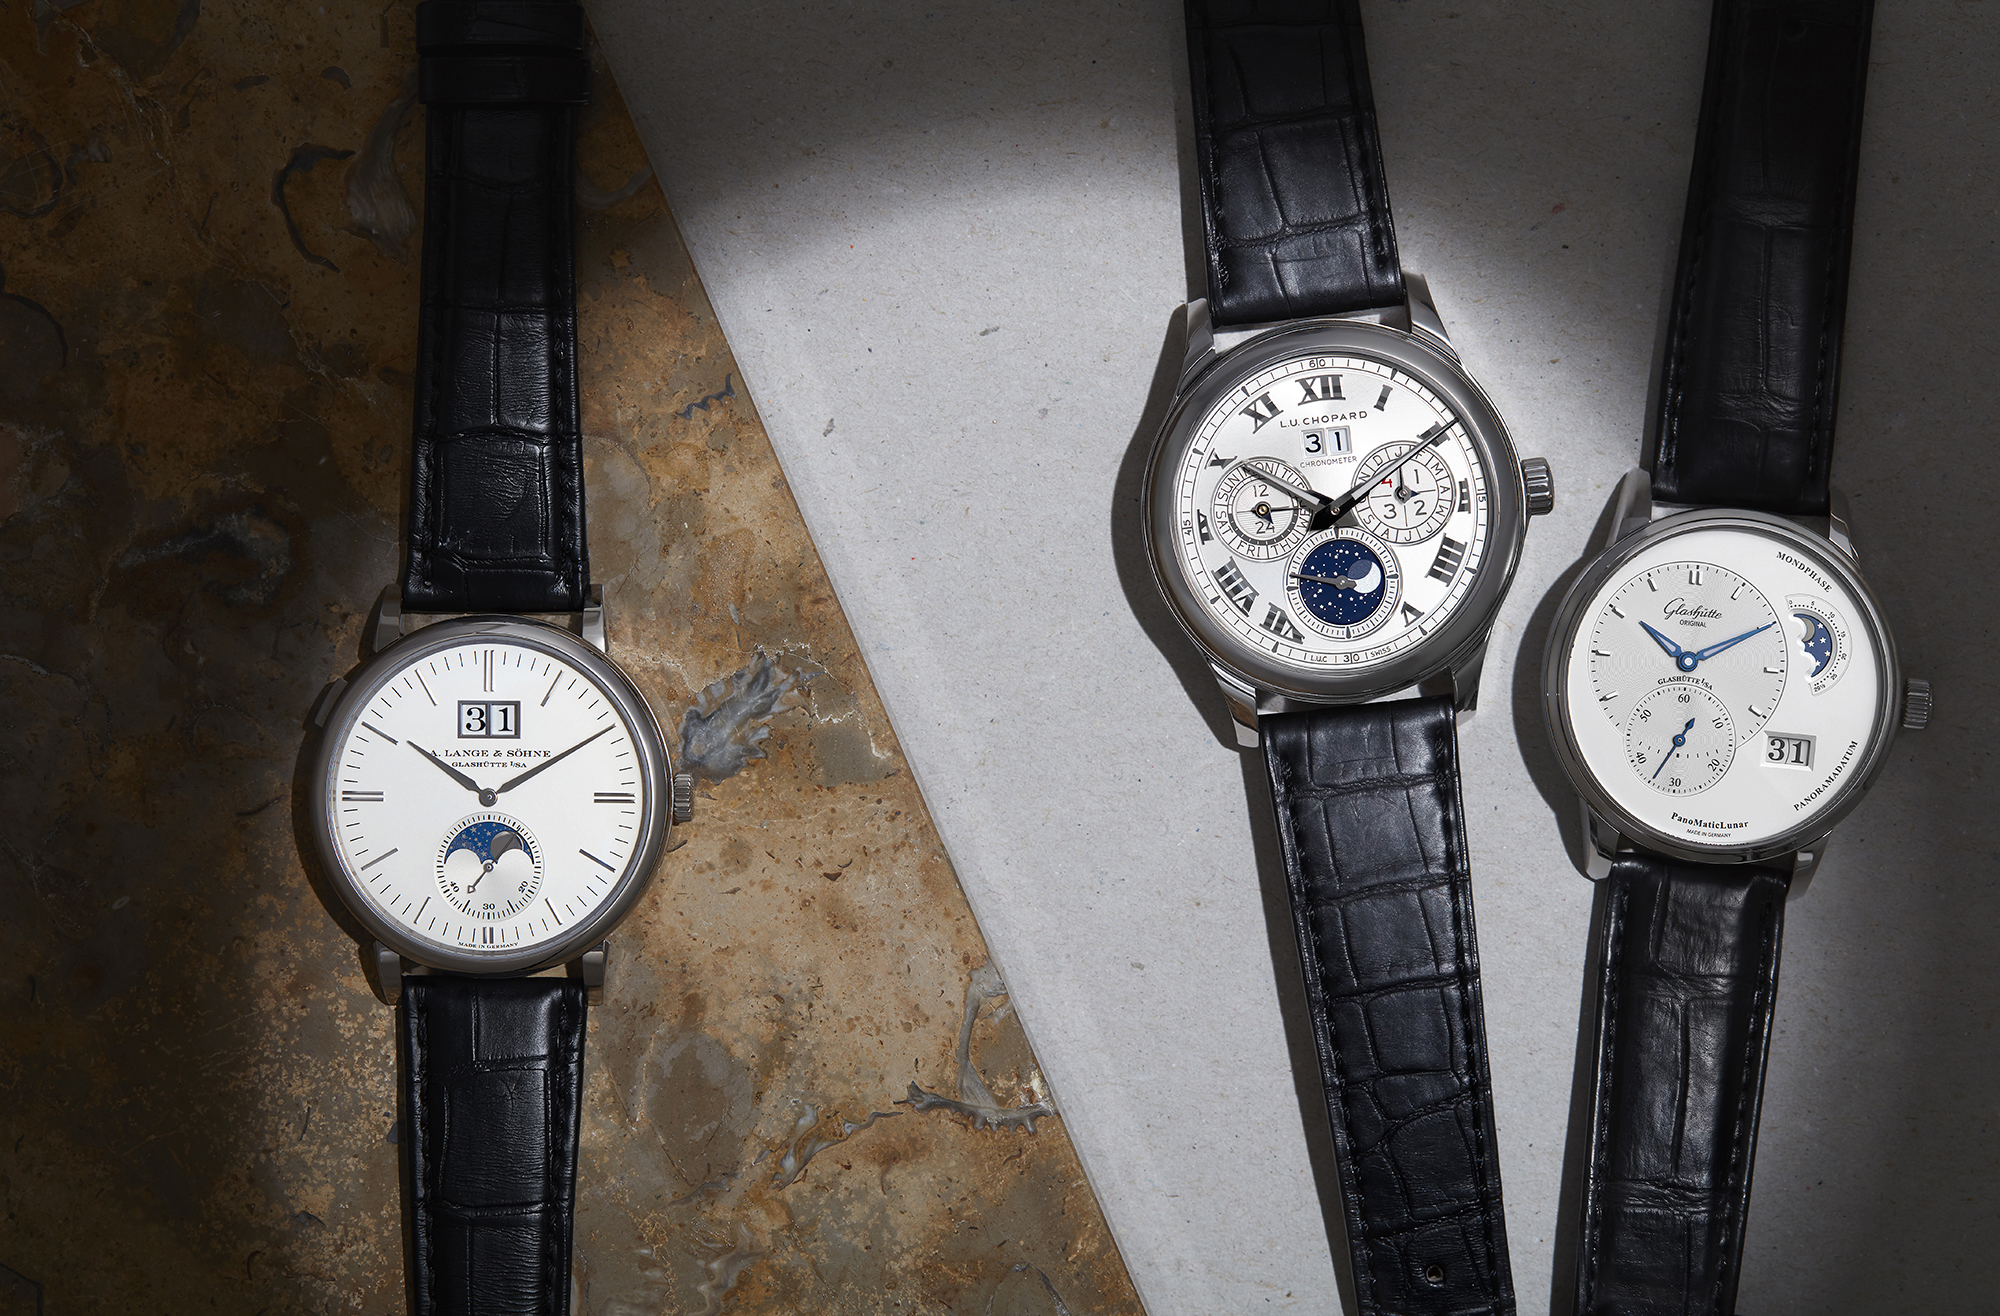 From left to right: Saxonia Moonphase, £24,500, A LANGE & SOHNE; L.U.C Lunar One in white gold on black alligator strap, £46,550, CHOPARD; Original PanoMaticLunar, £7,600, GLASHÜTTE